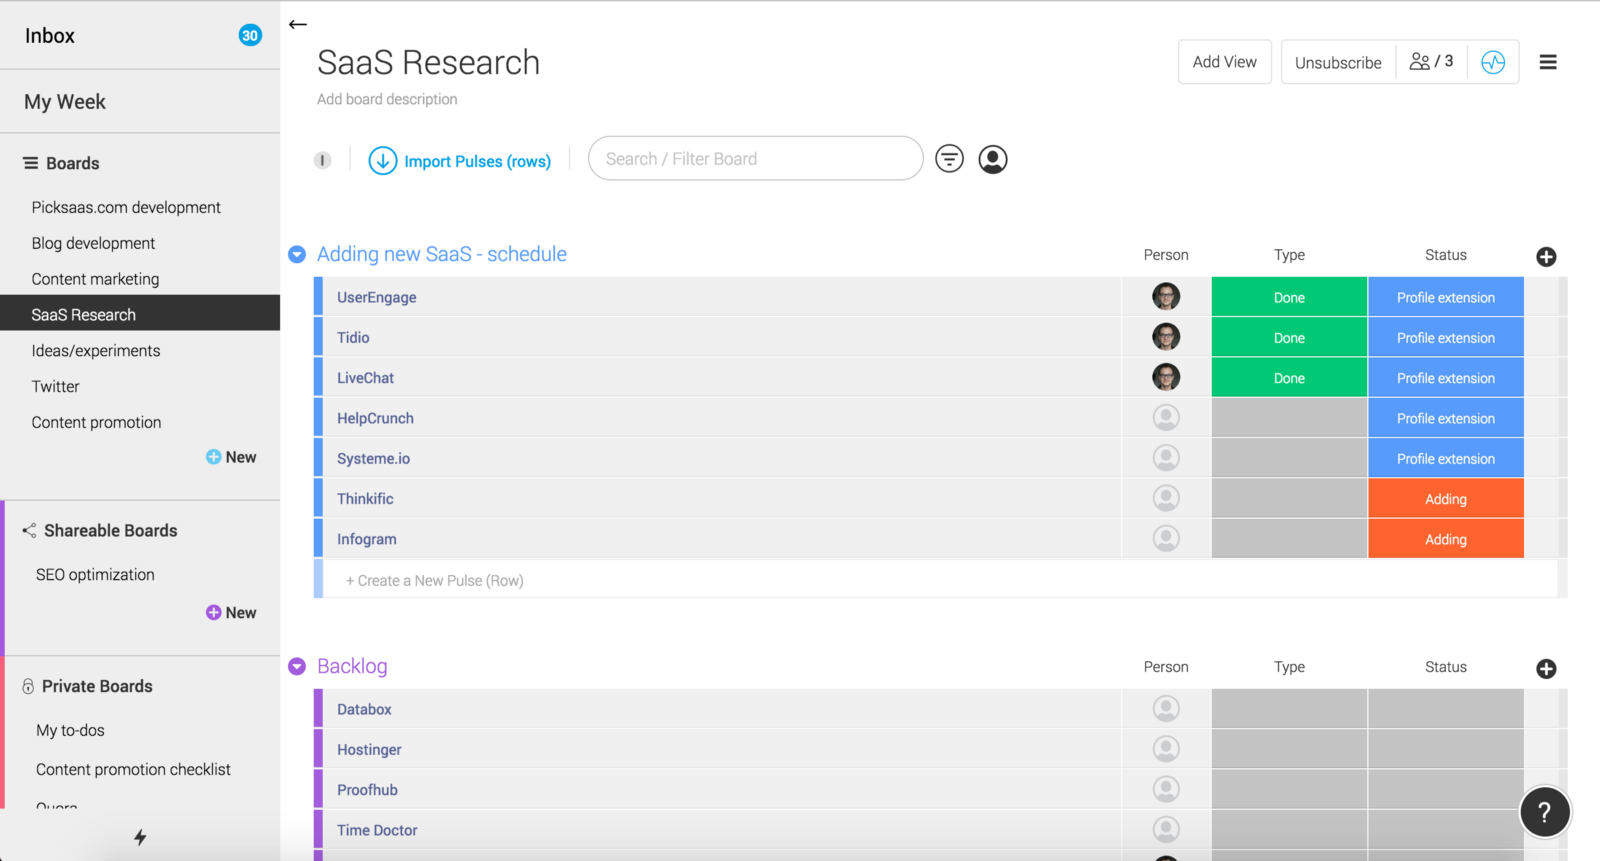 SaaS Research board -> schedule for software research